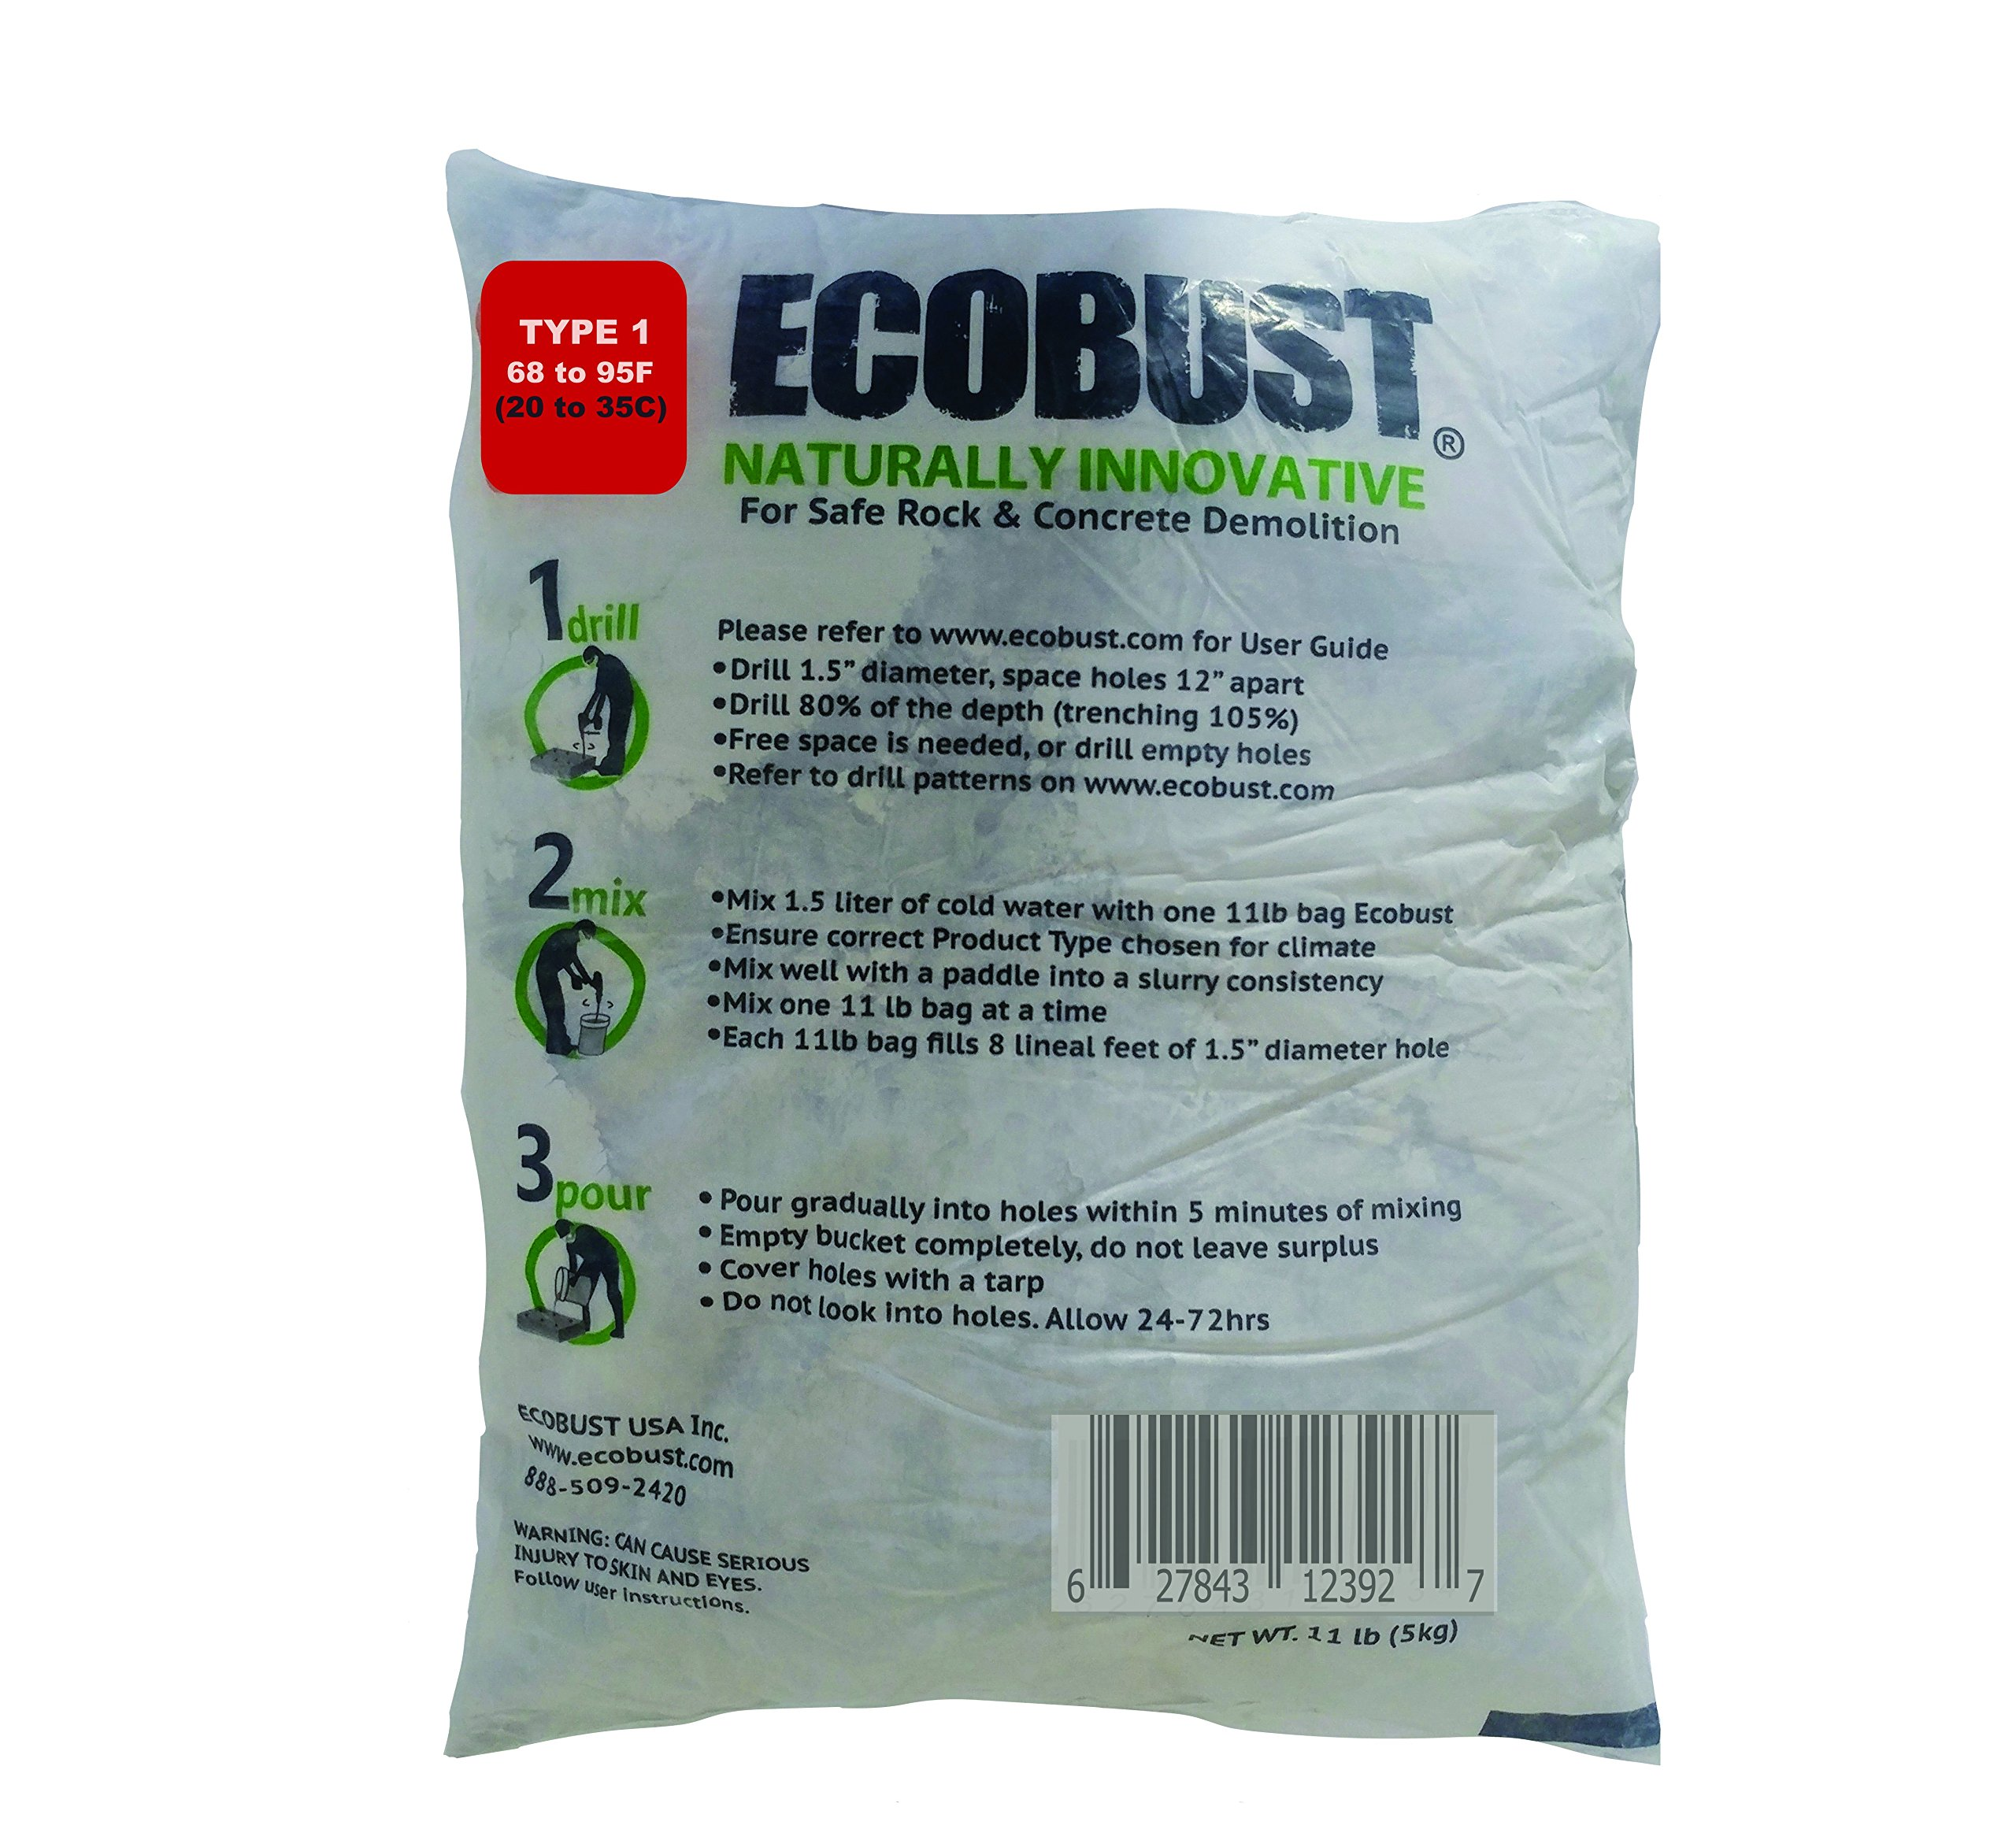 Ecobust USA Type 1 (68F to 95F) Concrete Cutting and Rock Breaking Non-Combustive Demolition Agent, 11lb (Packaging may vary)